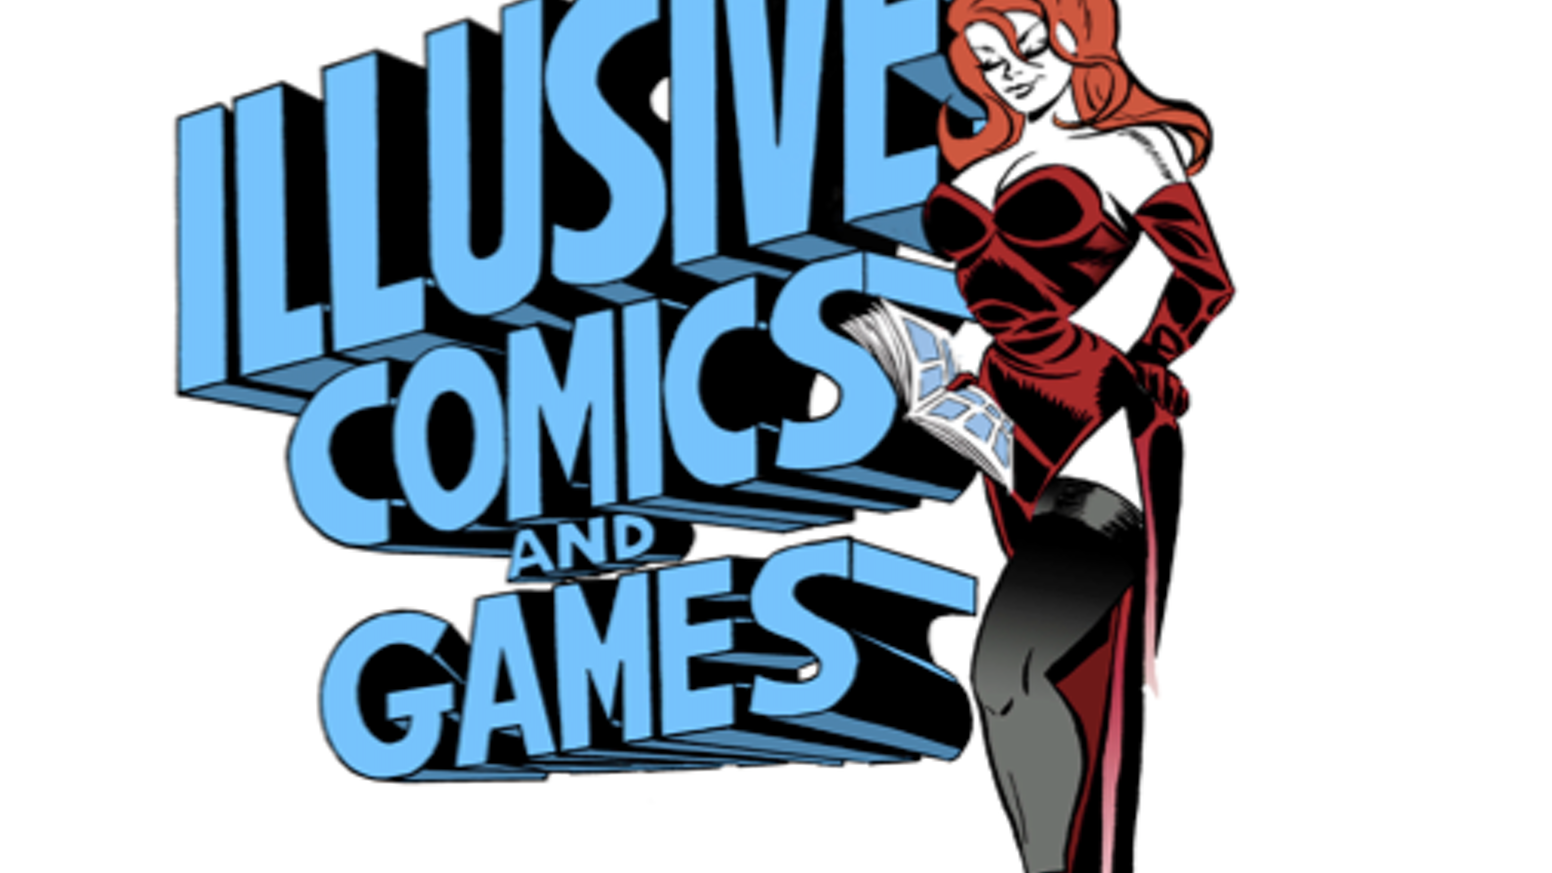 Illusive Comics has to move to a new home, and we want your help to make it amazing.